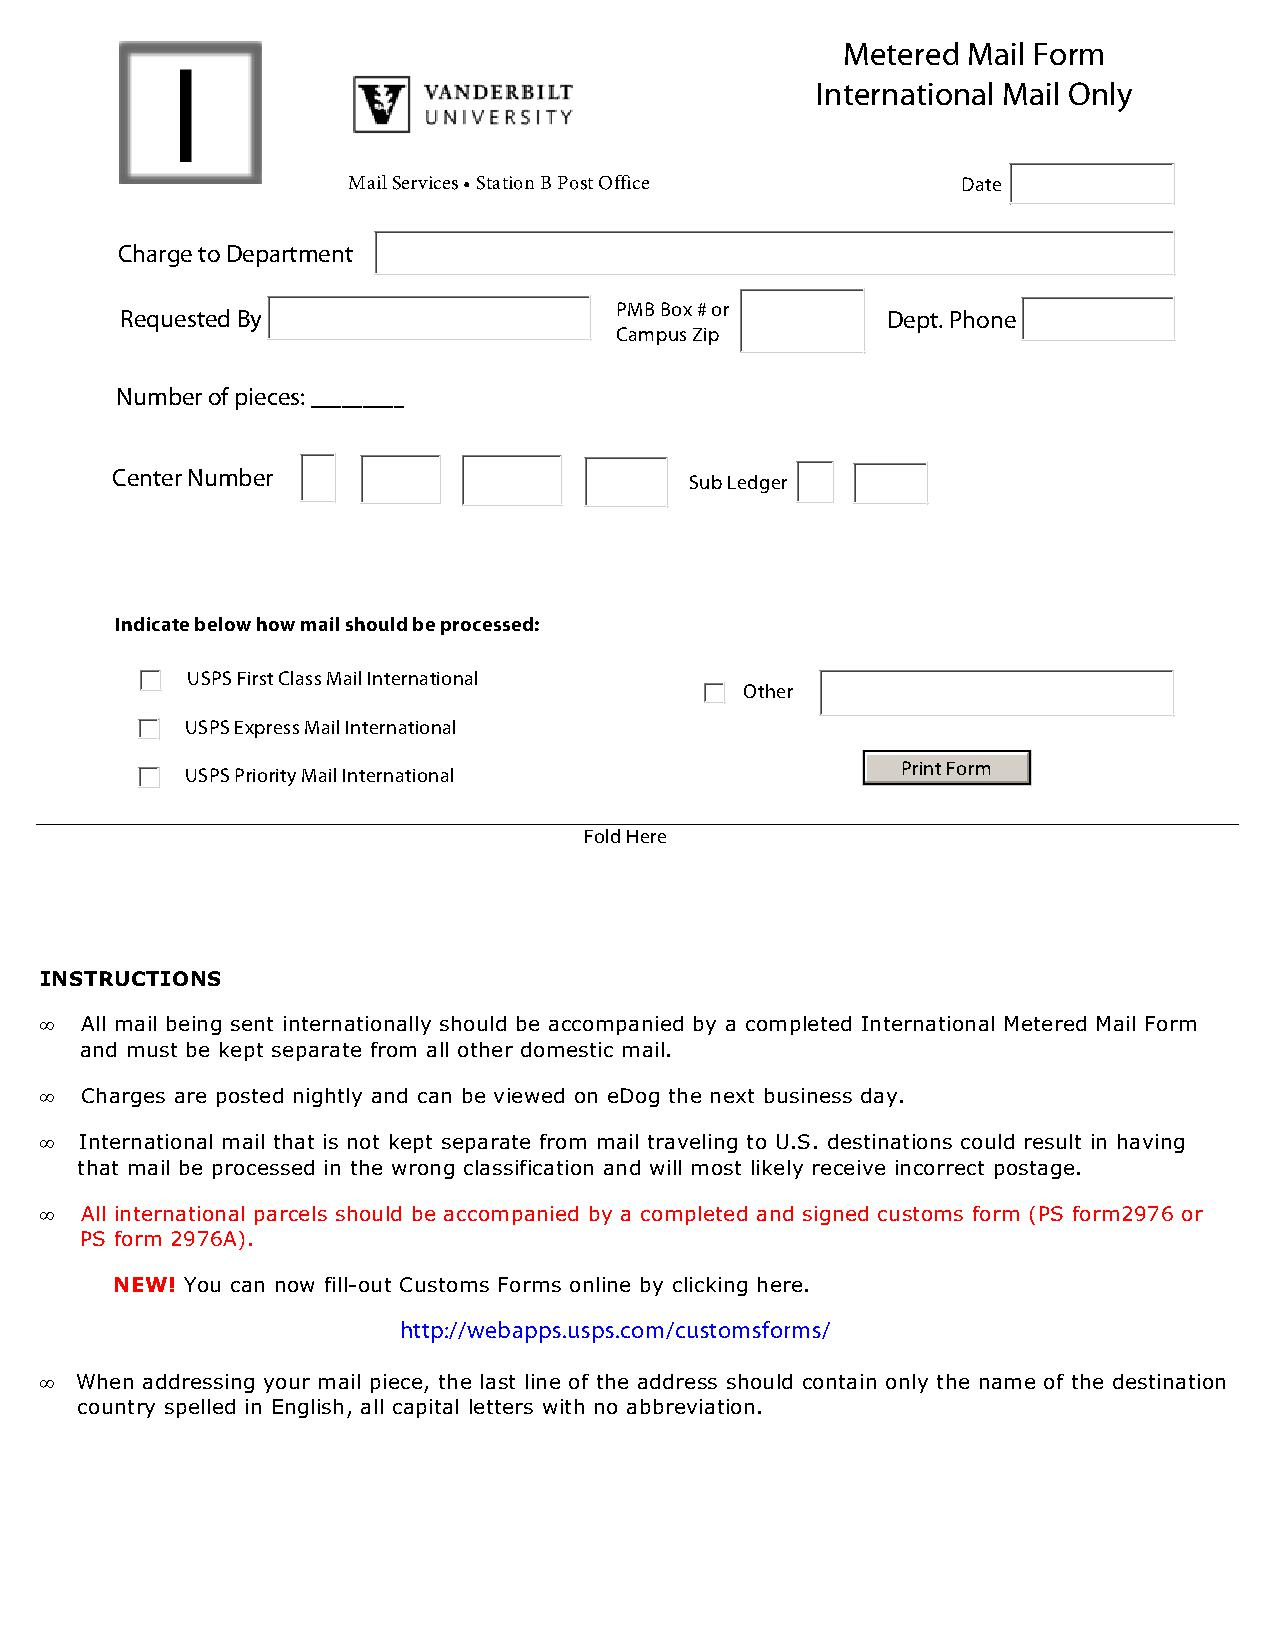 International Mail form